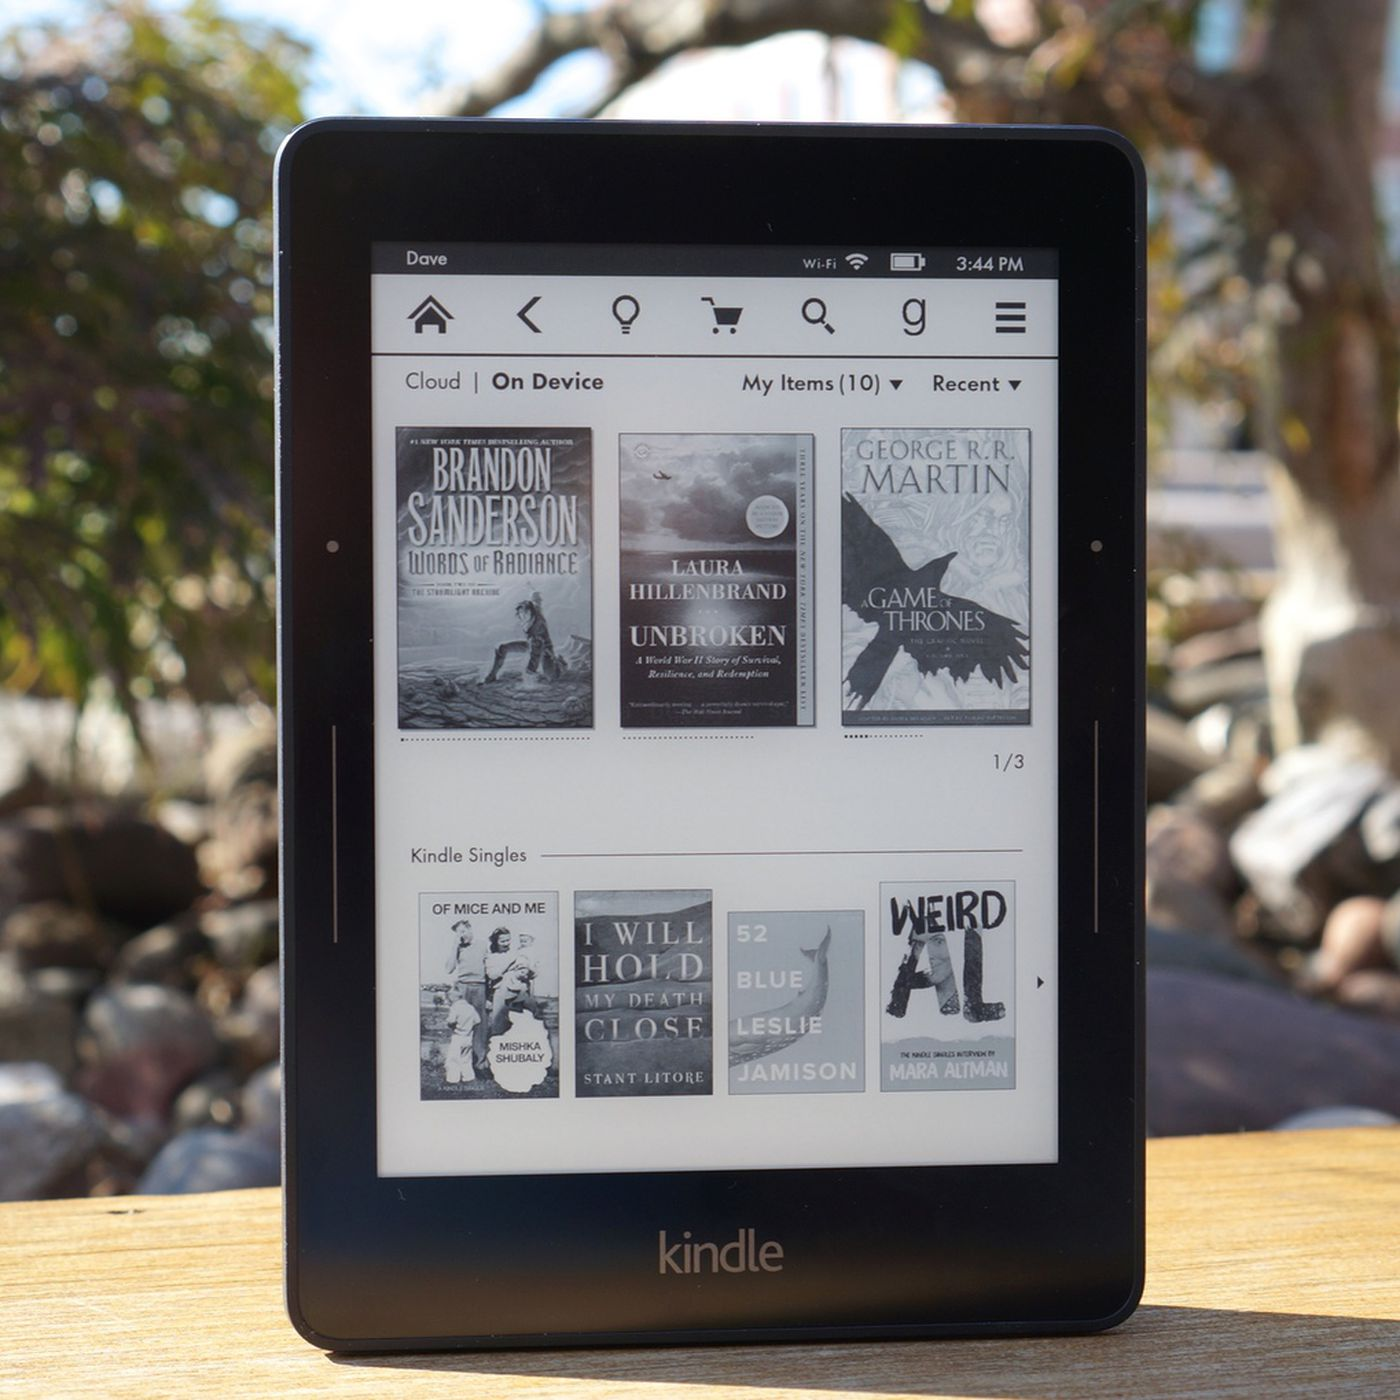 Amazon appears to have discontinued the Kindle Voyage - The